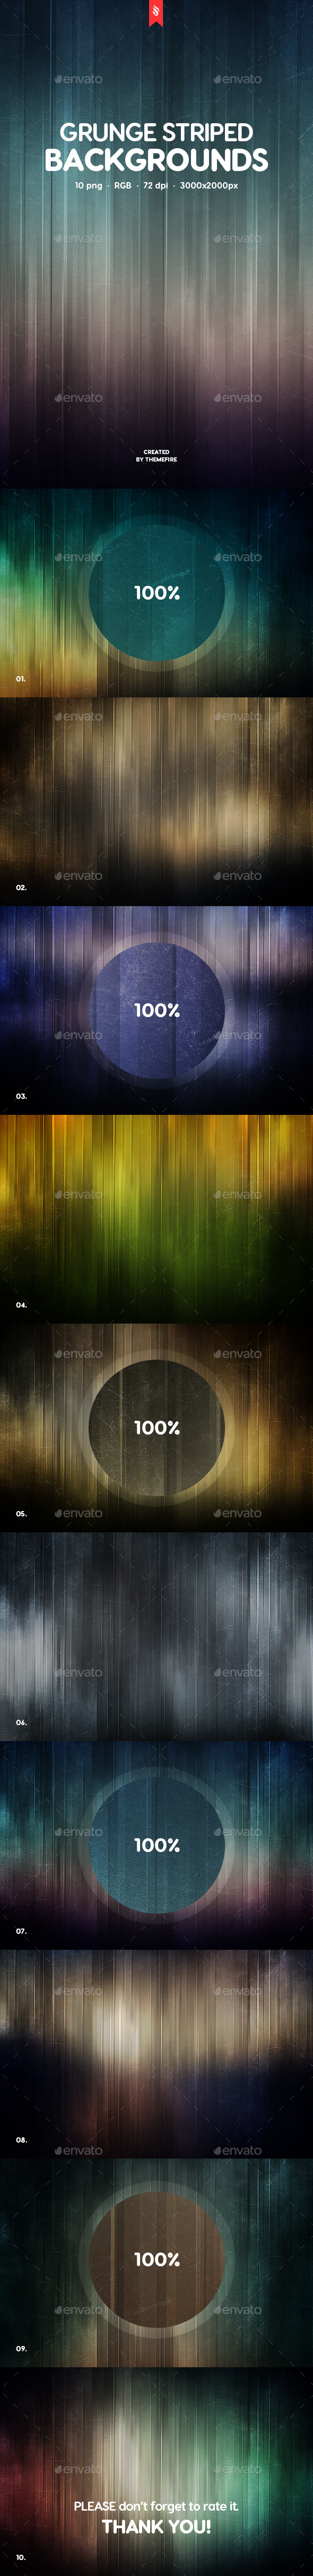 Grunge Striped Backgrounds - Abstract Backgrounds